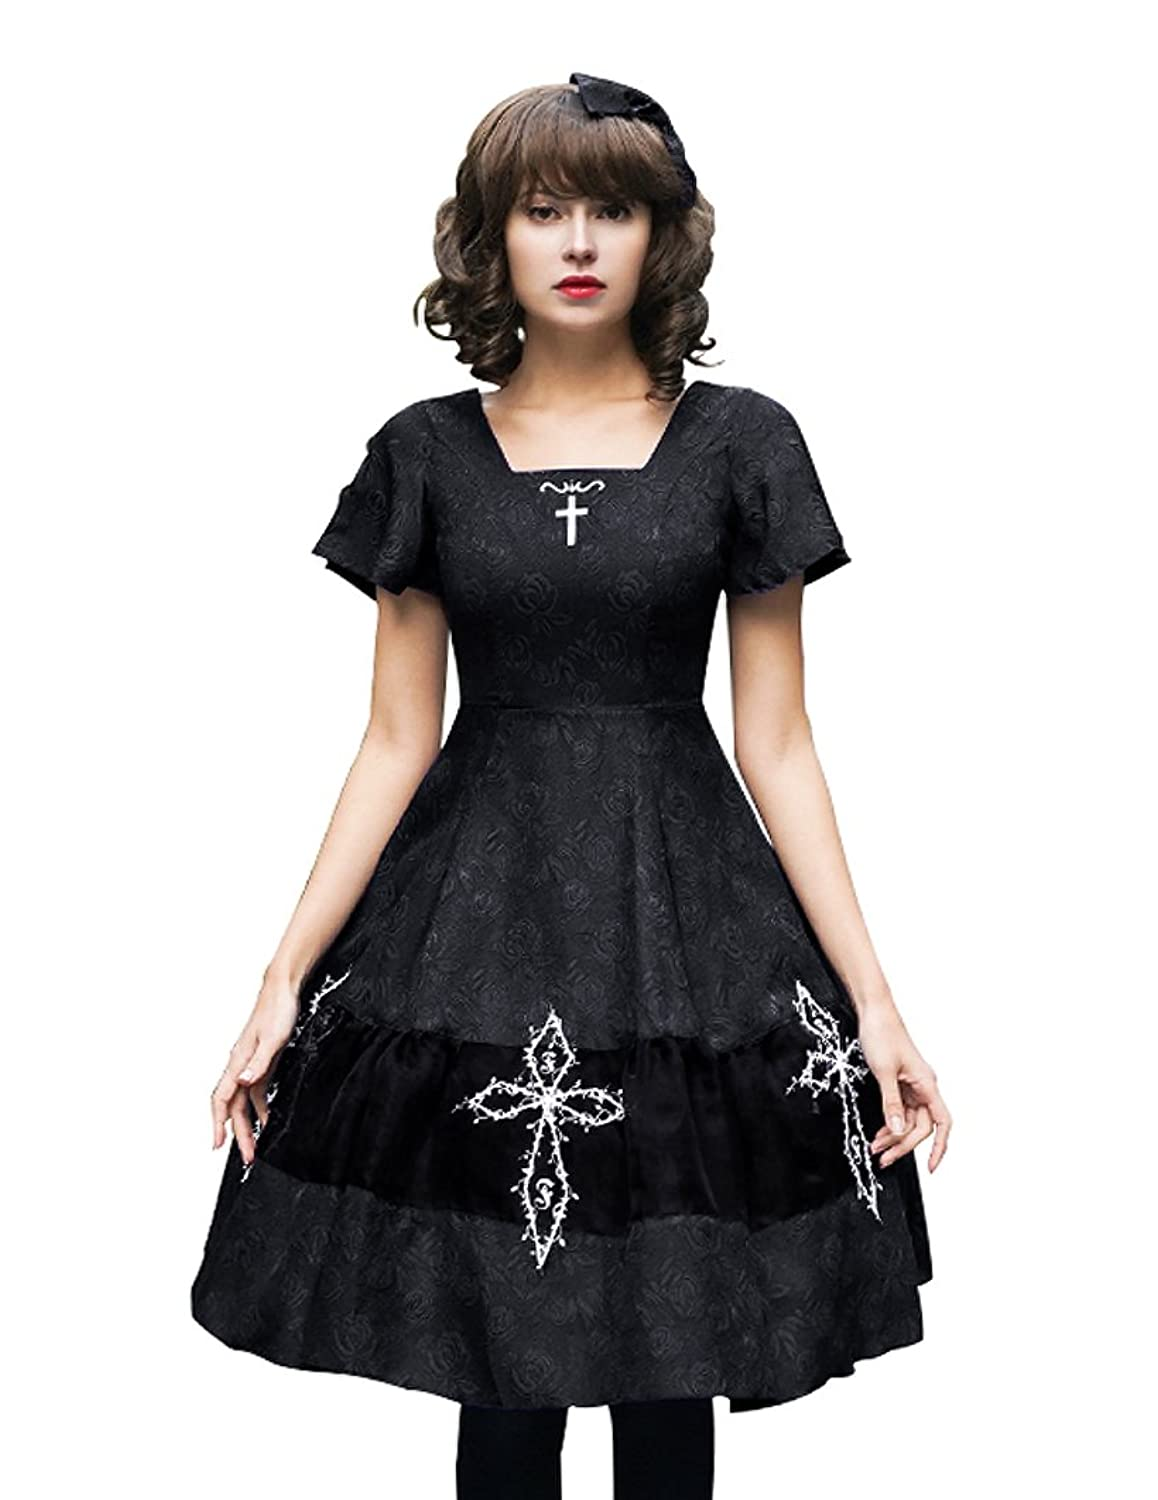 Exclusive Vintage Designer Fashion Gothic Square Neckline Jacquard Summer Dress/OP & Skorts & Hairbow